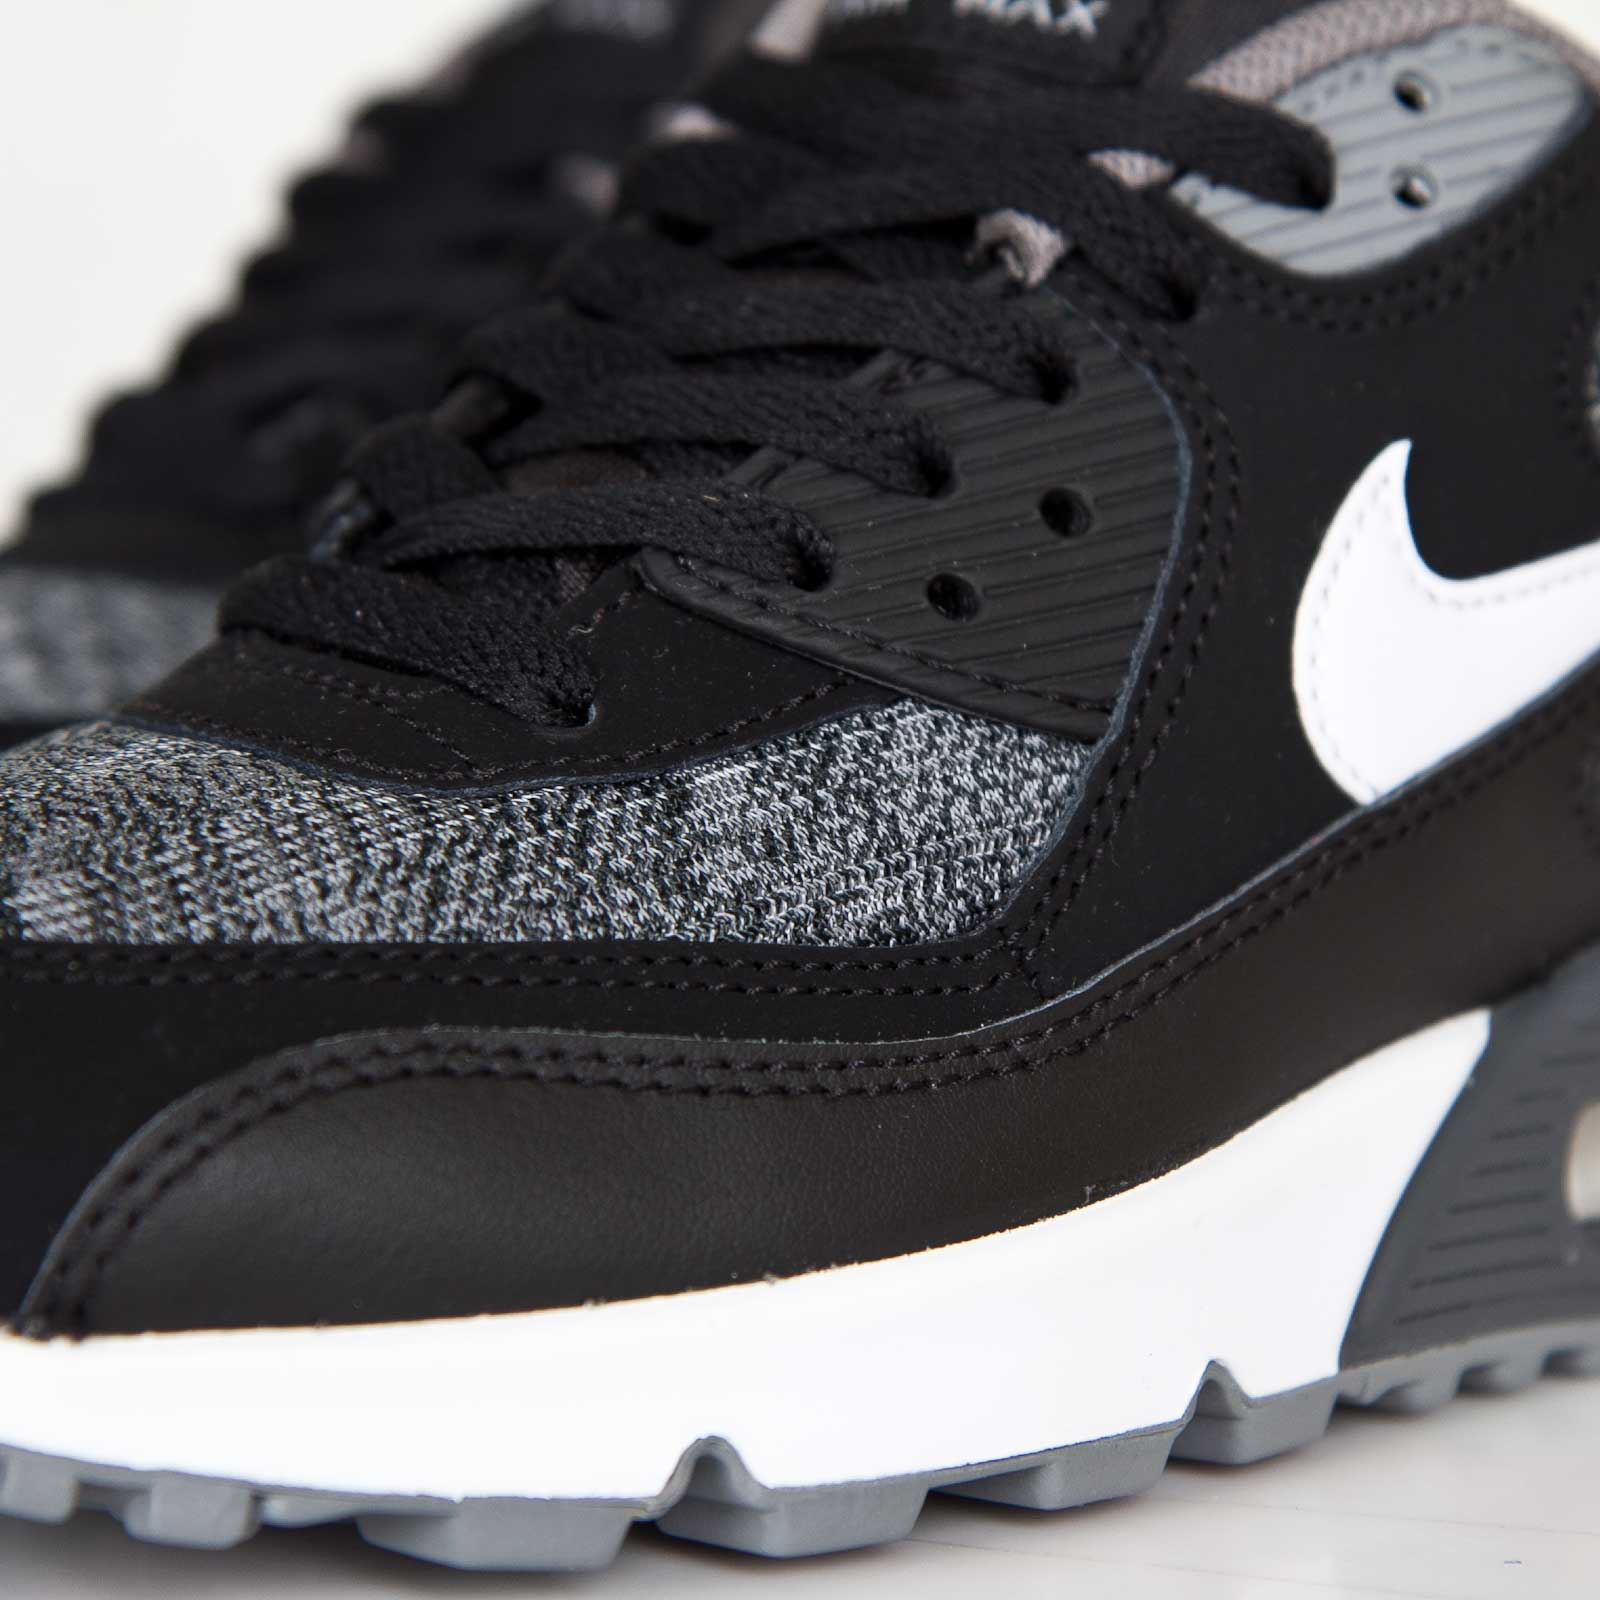 quality design e862a 5e121 Nike Air Max 90 (GS) - 307793-005 - Sneakersnstuff   sneakers   streetwear  online since 1999